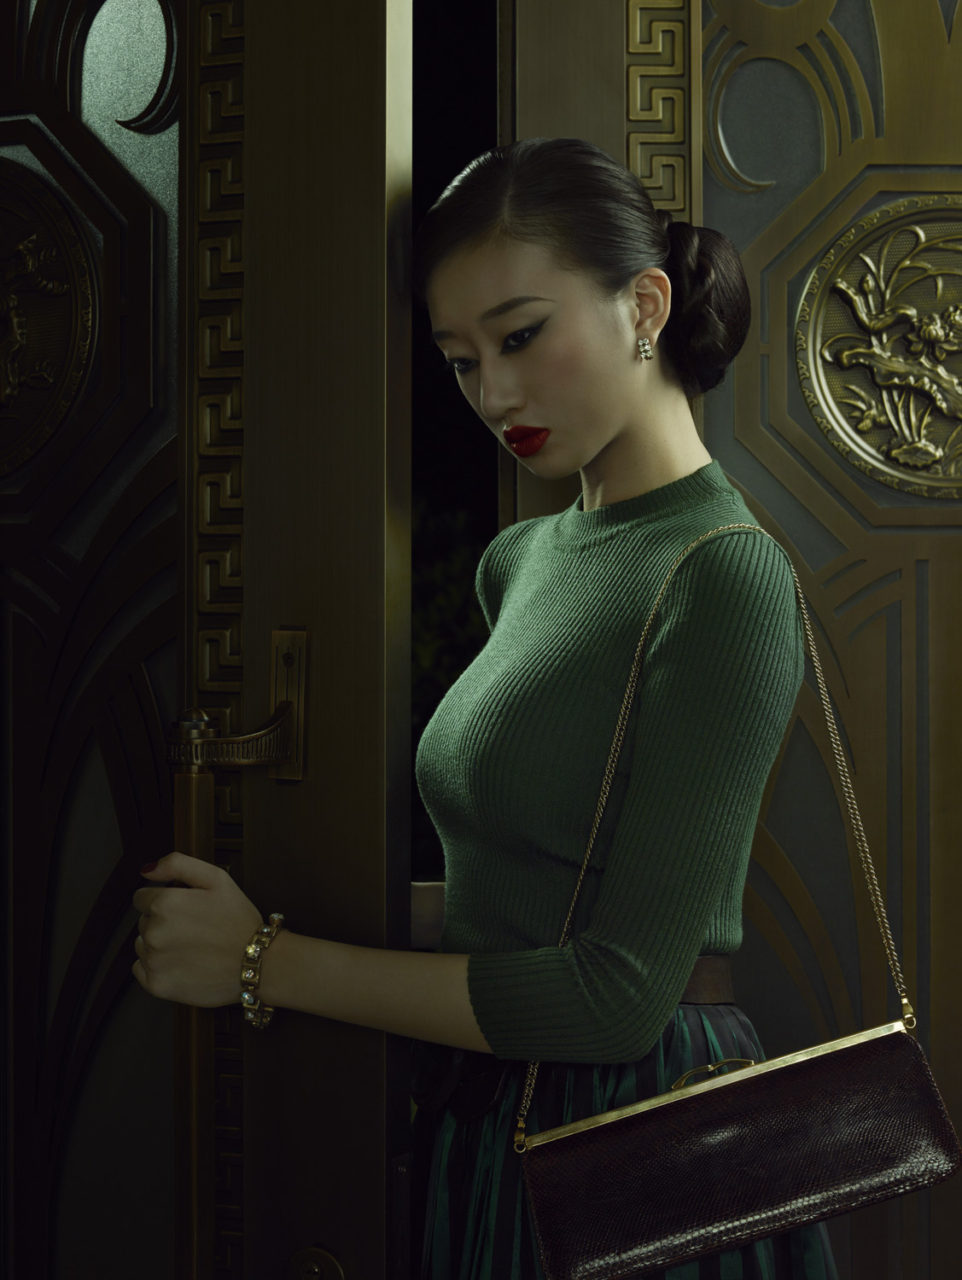 Shanghai_Du Mansion_Portrait 01_2017